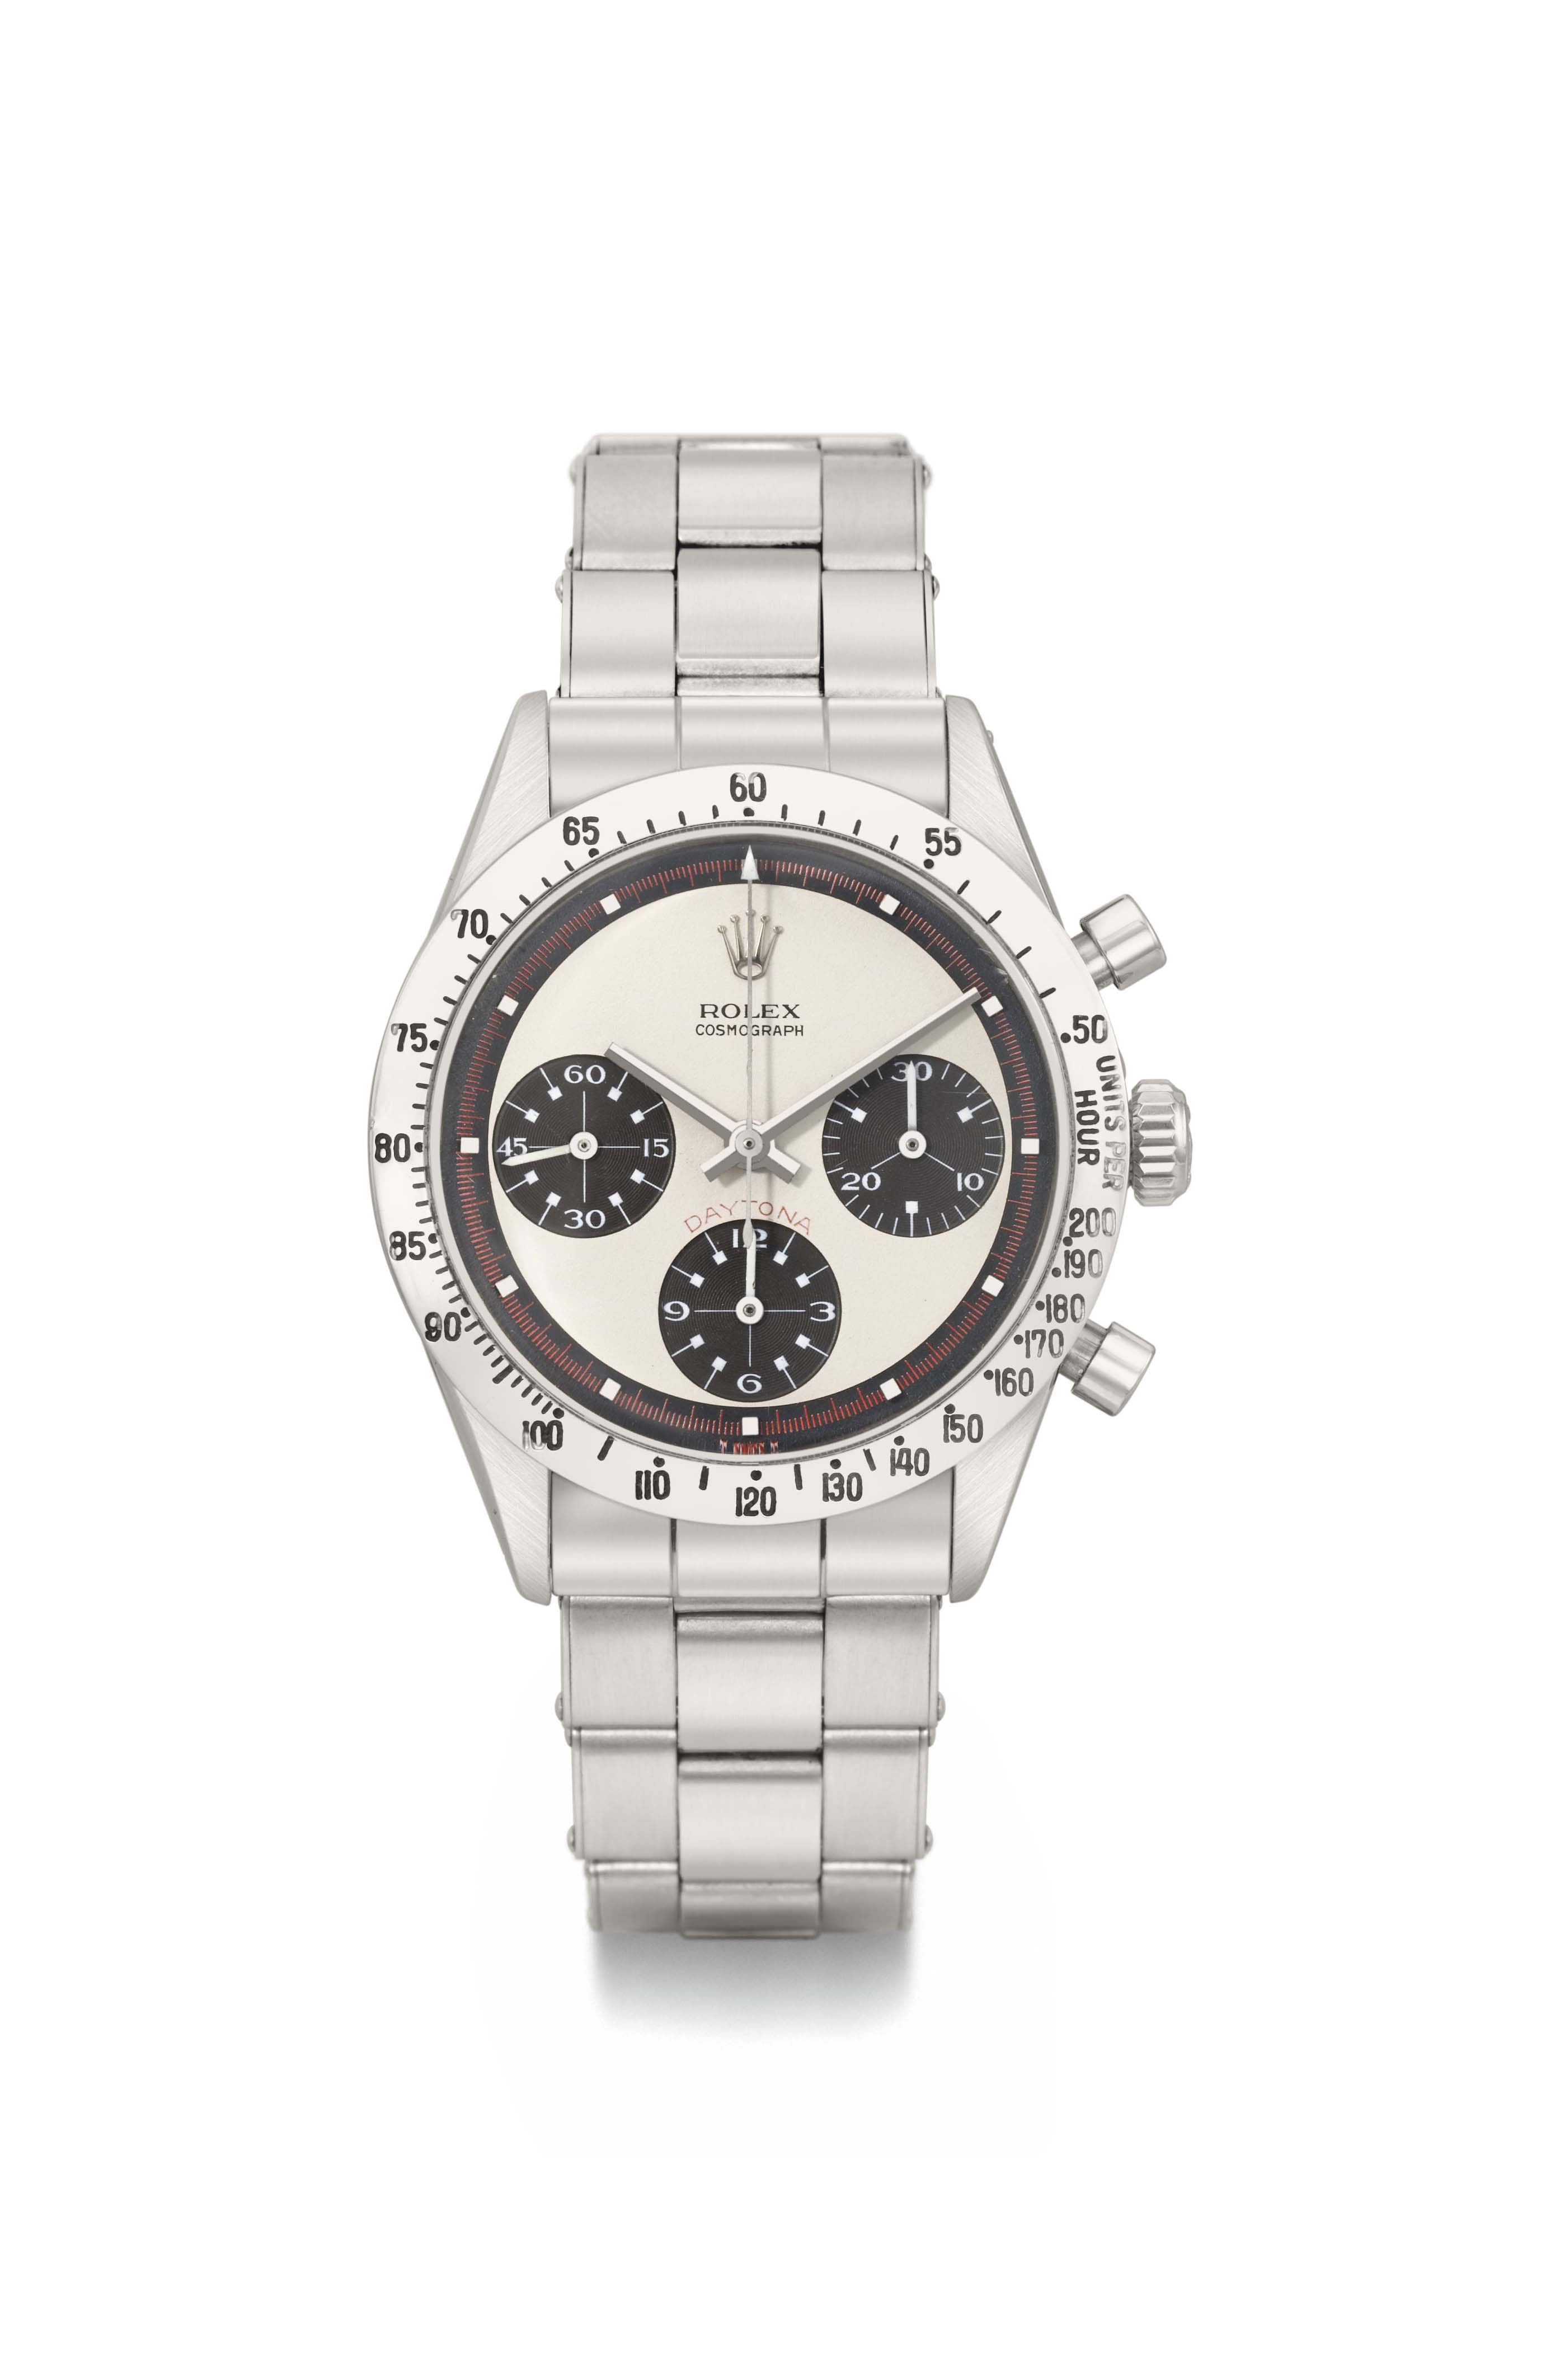 Rolex. A very rare and unusual stainless steel chronograph wristwatch with non-luminous dial and hands, ebony-coloured subsidiary dials, bracelet and original box